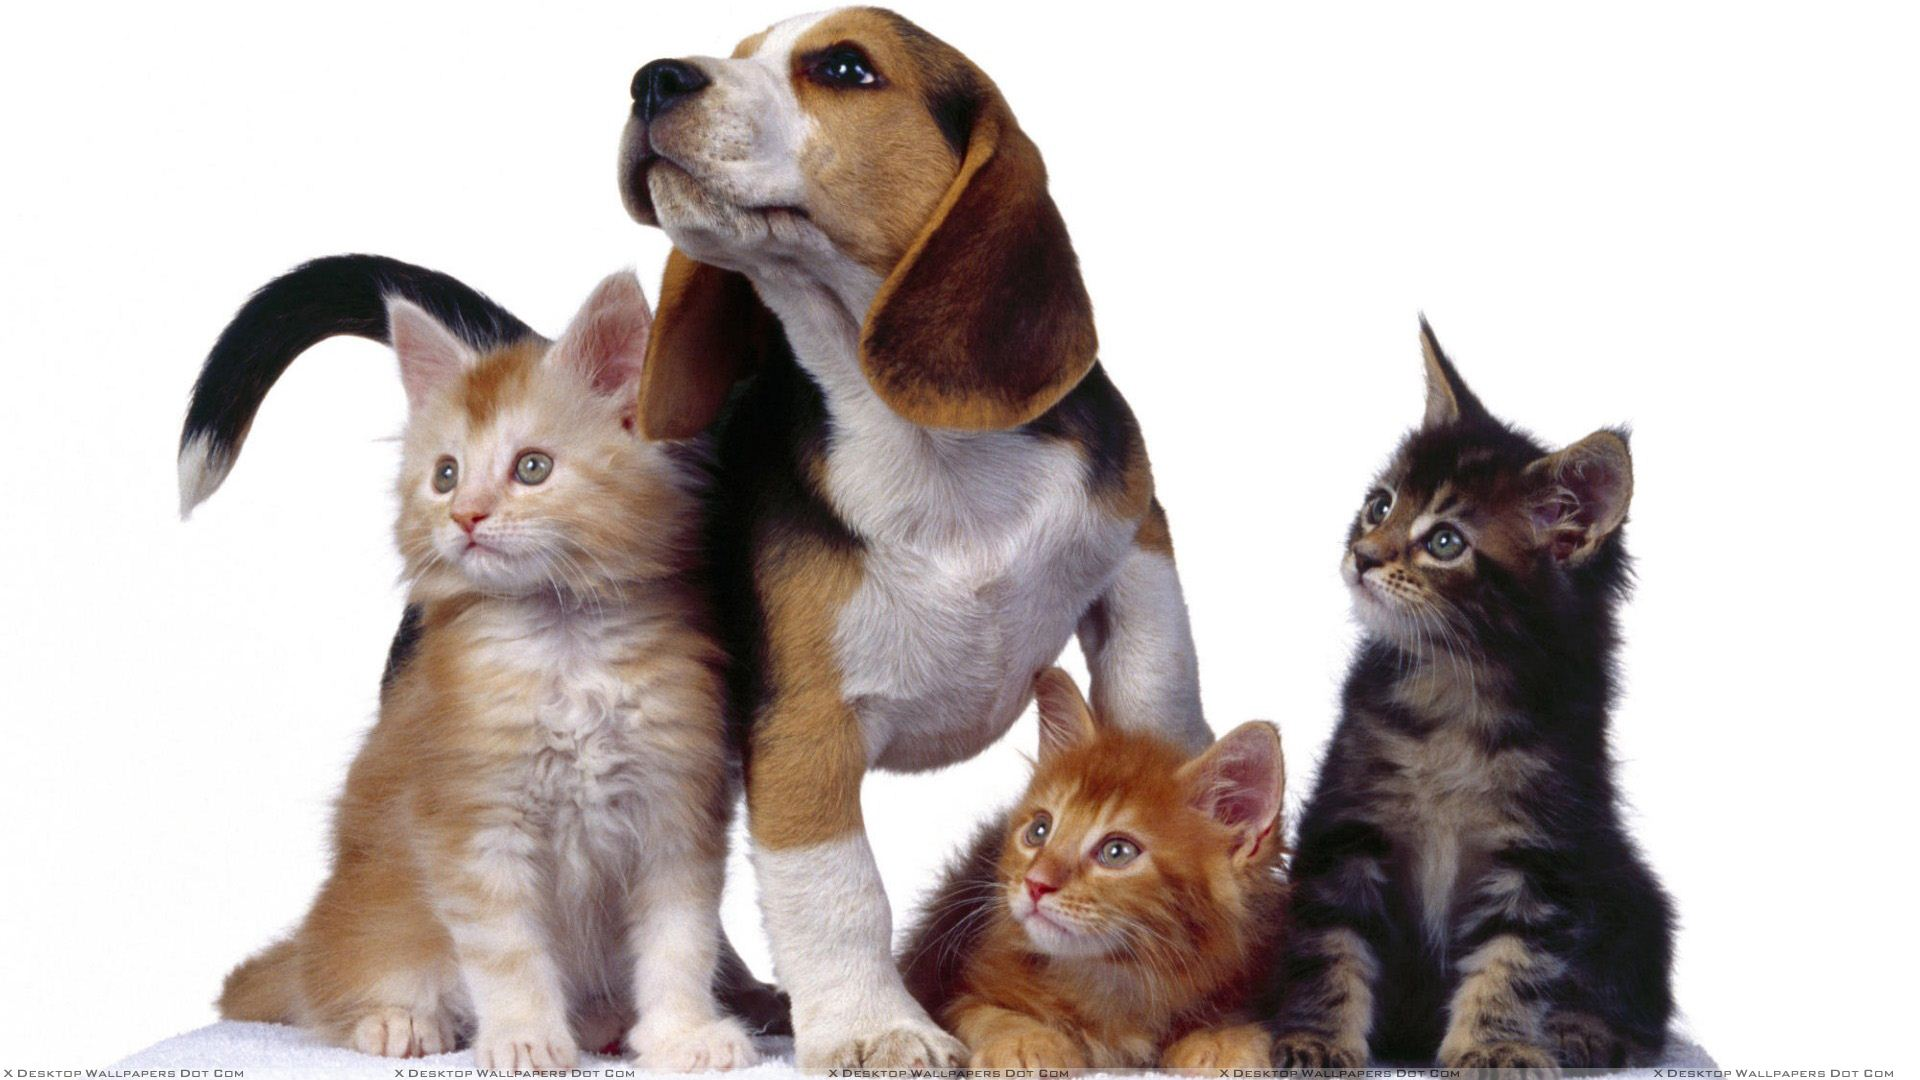 3 Cats With Dog On White Background Wallpaper